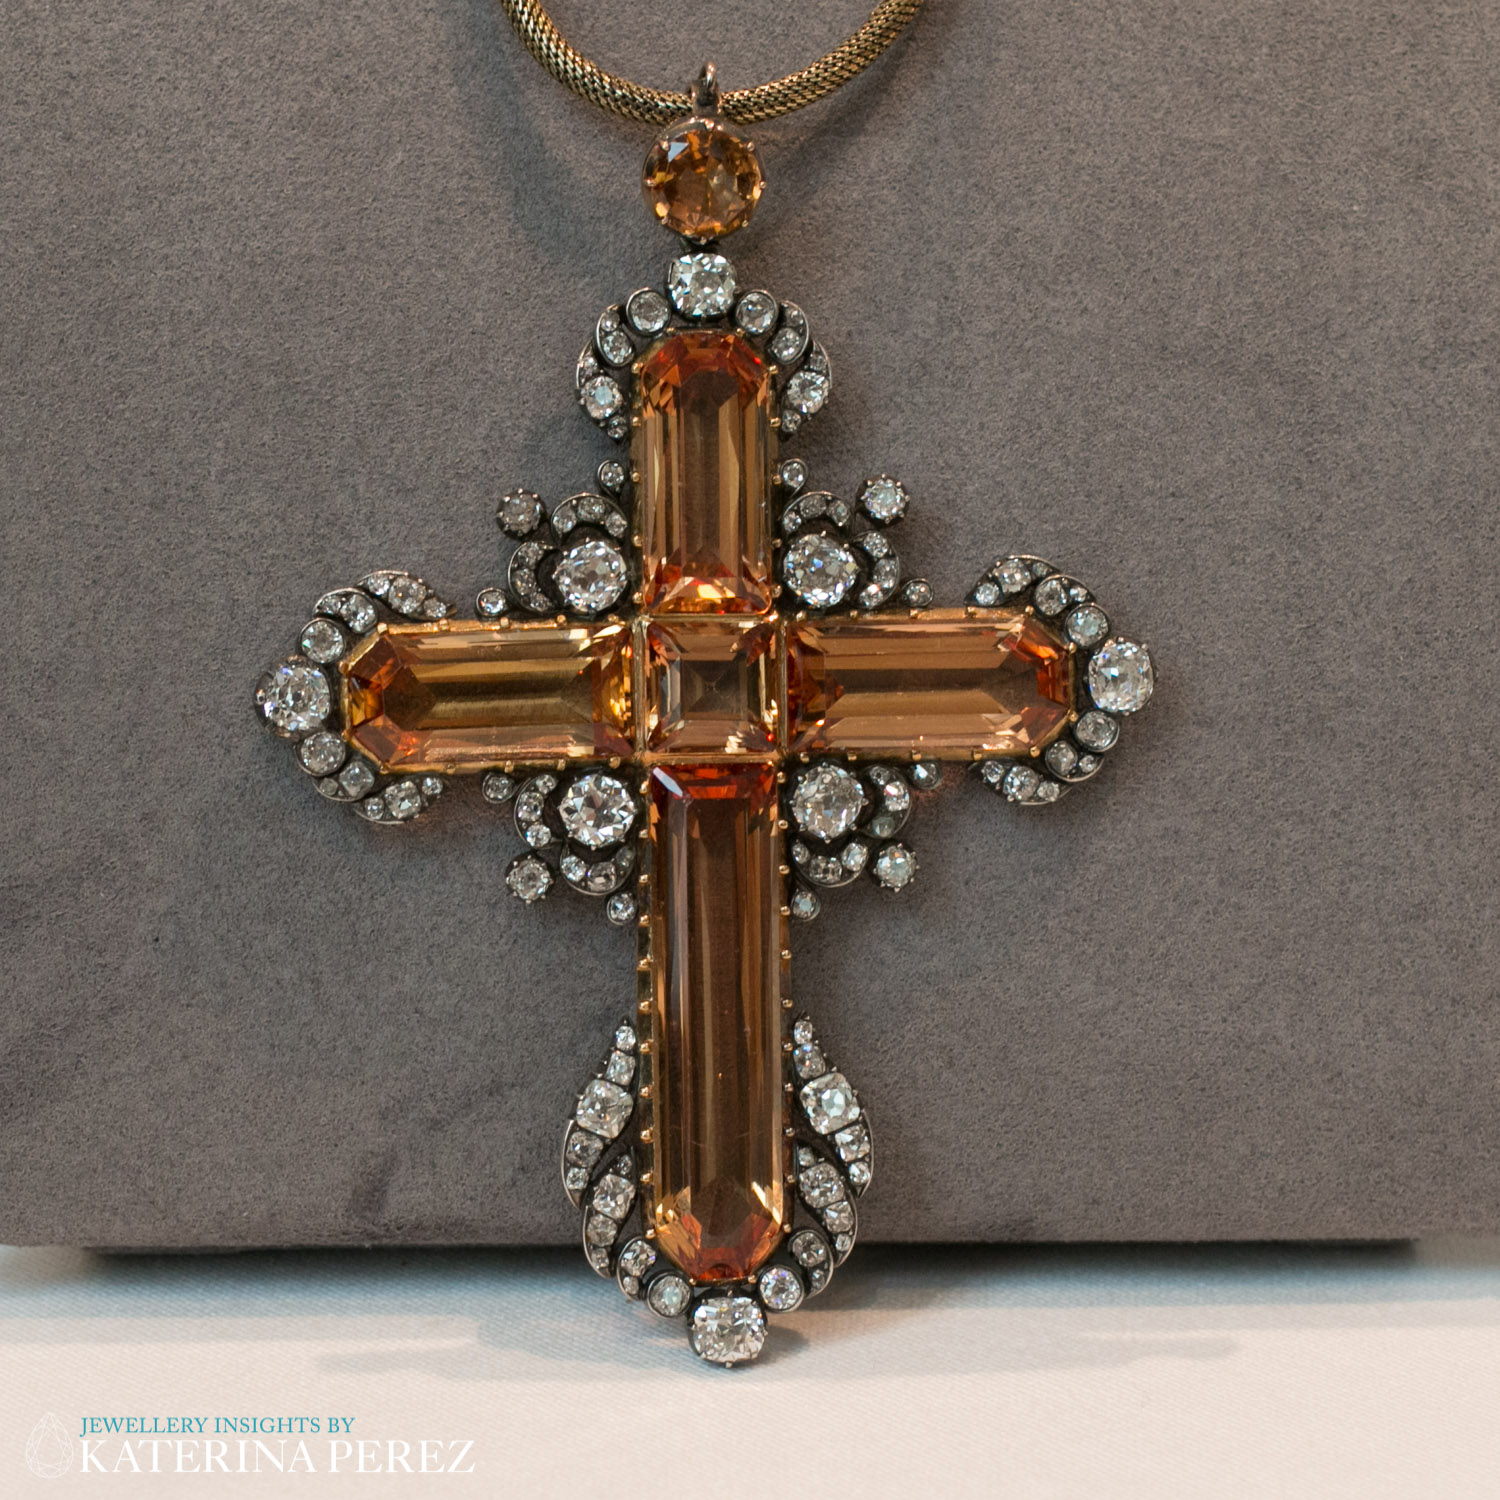 An Imperial Cross Pendant, Topaz and Diamond, circa 1830